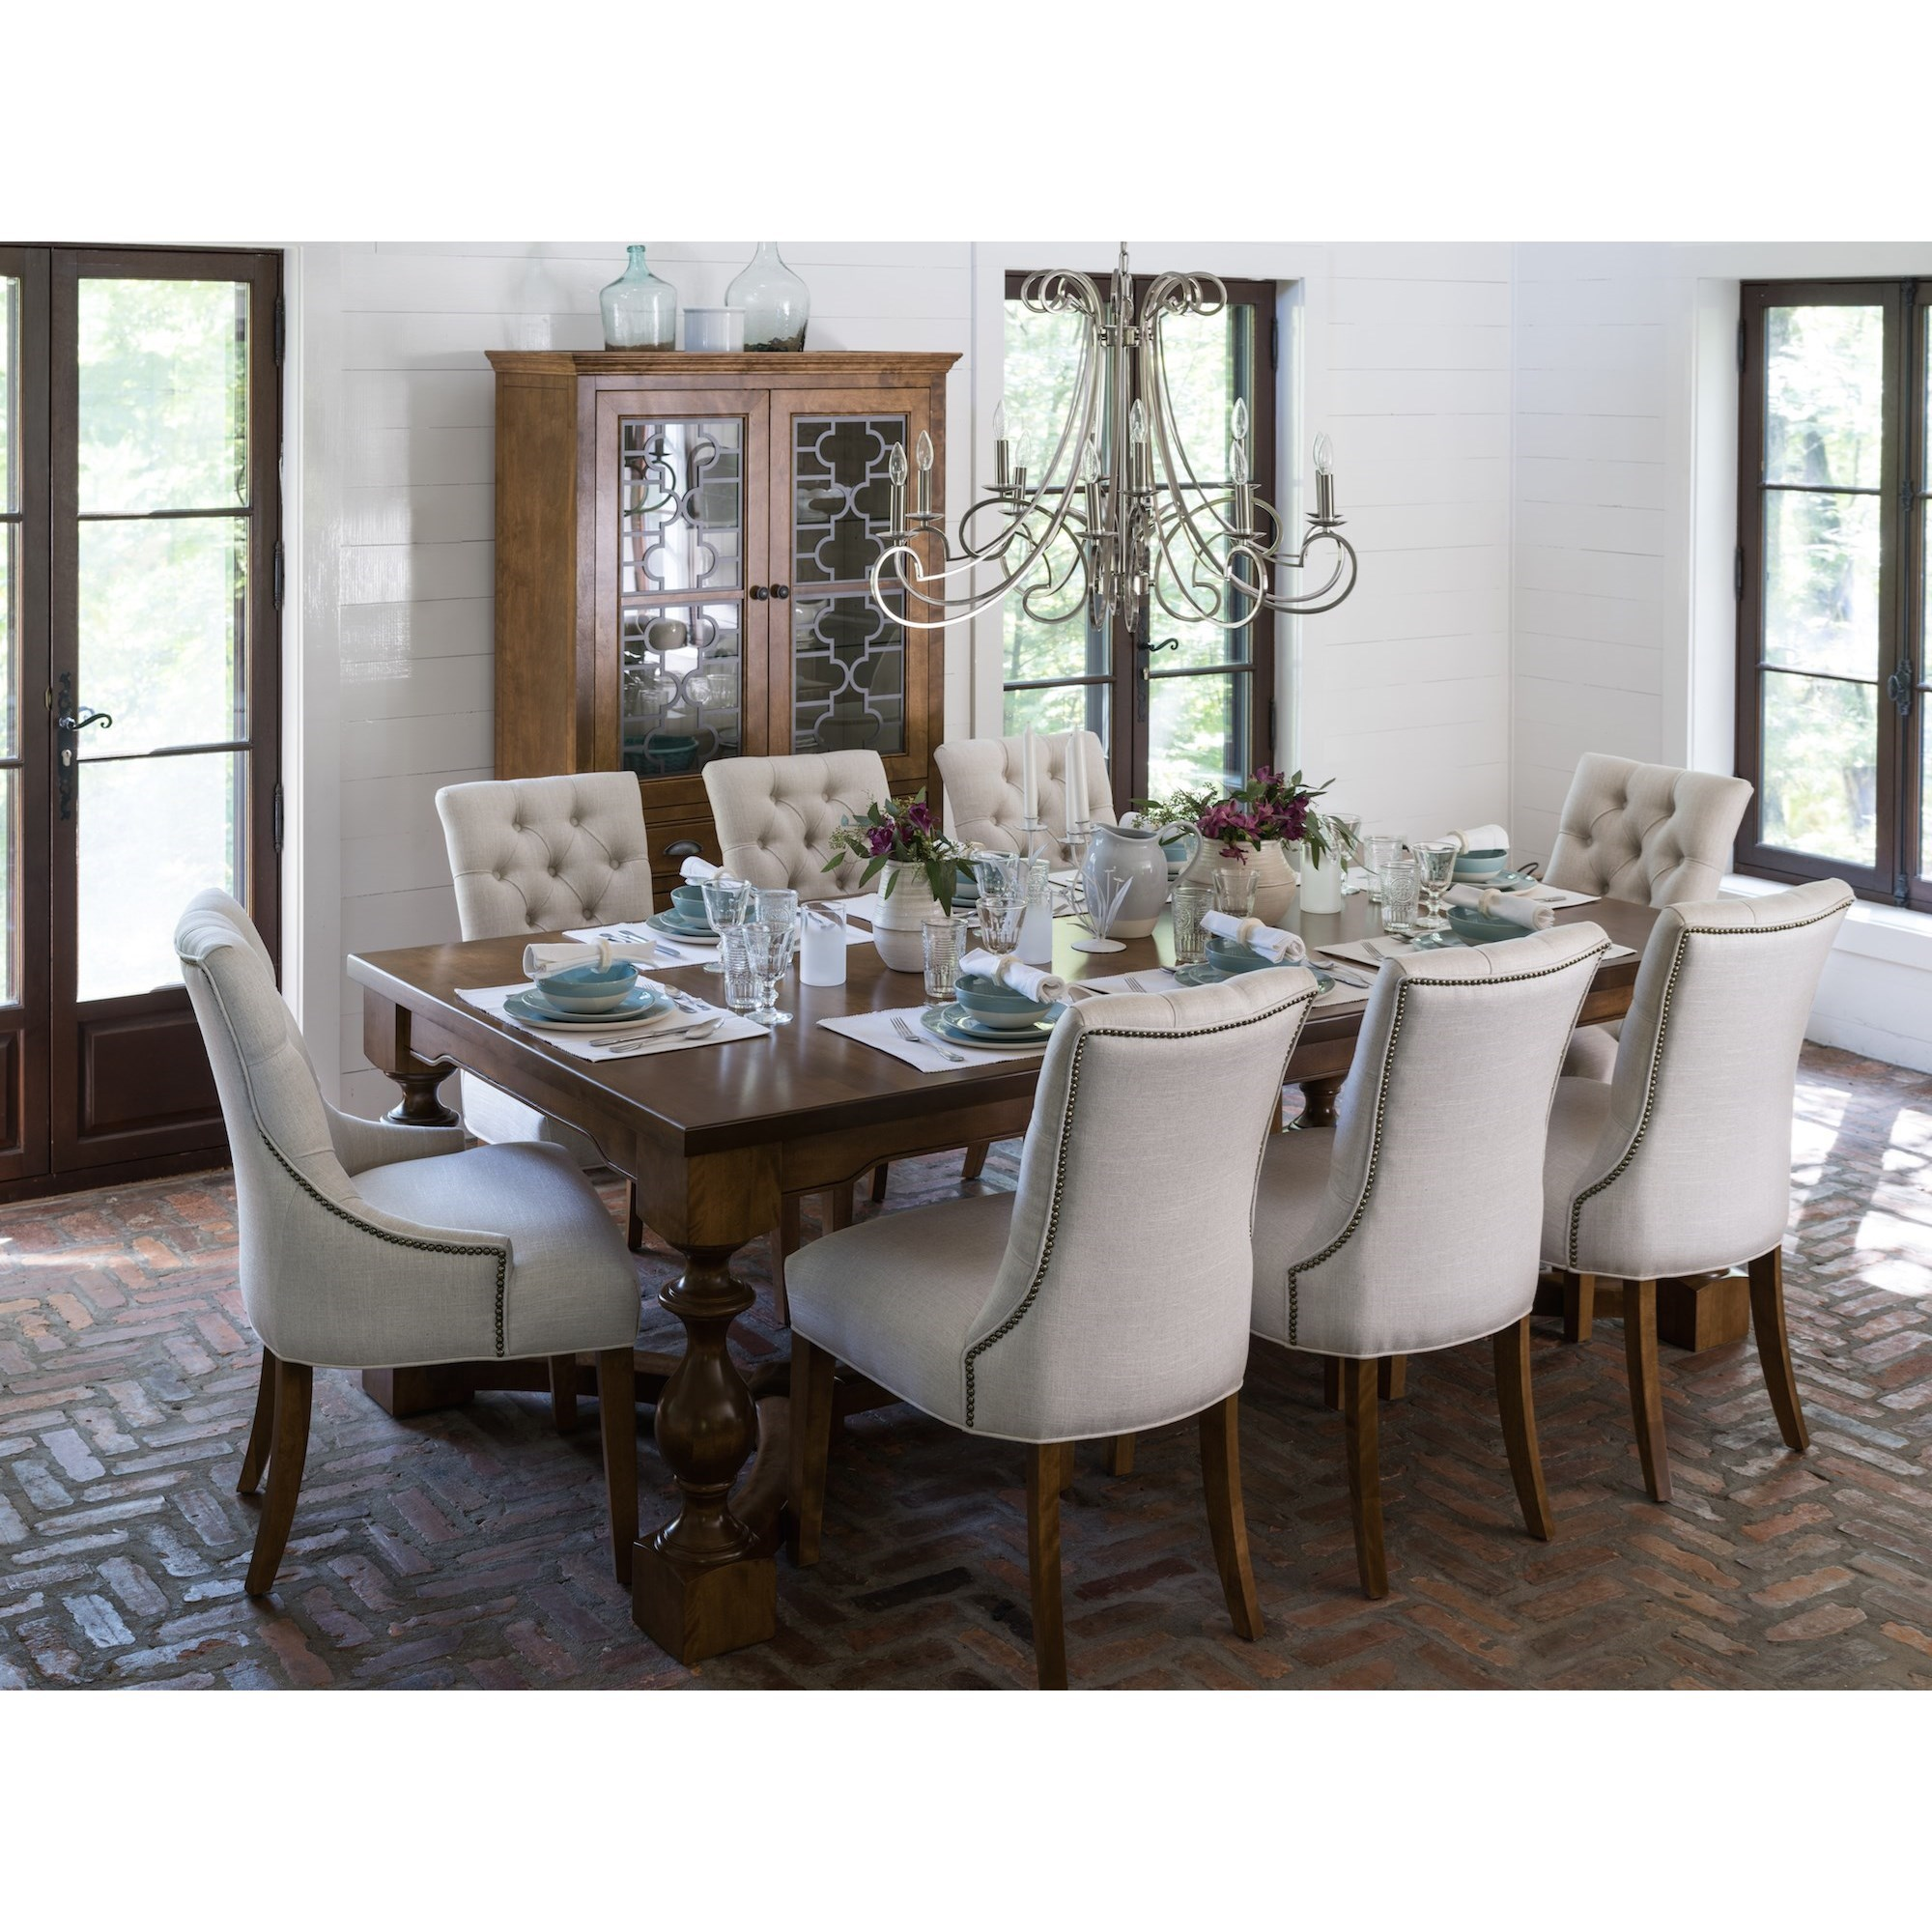 Charmant Canadel Farmhouse ChicDining Room Group ...